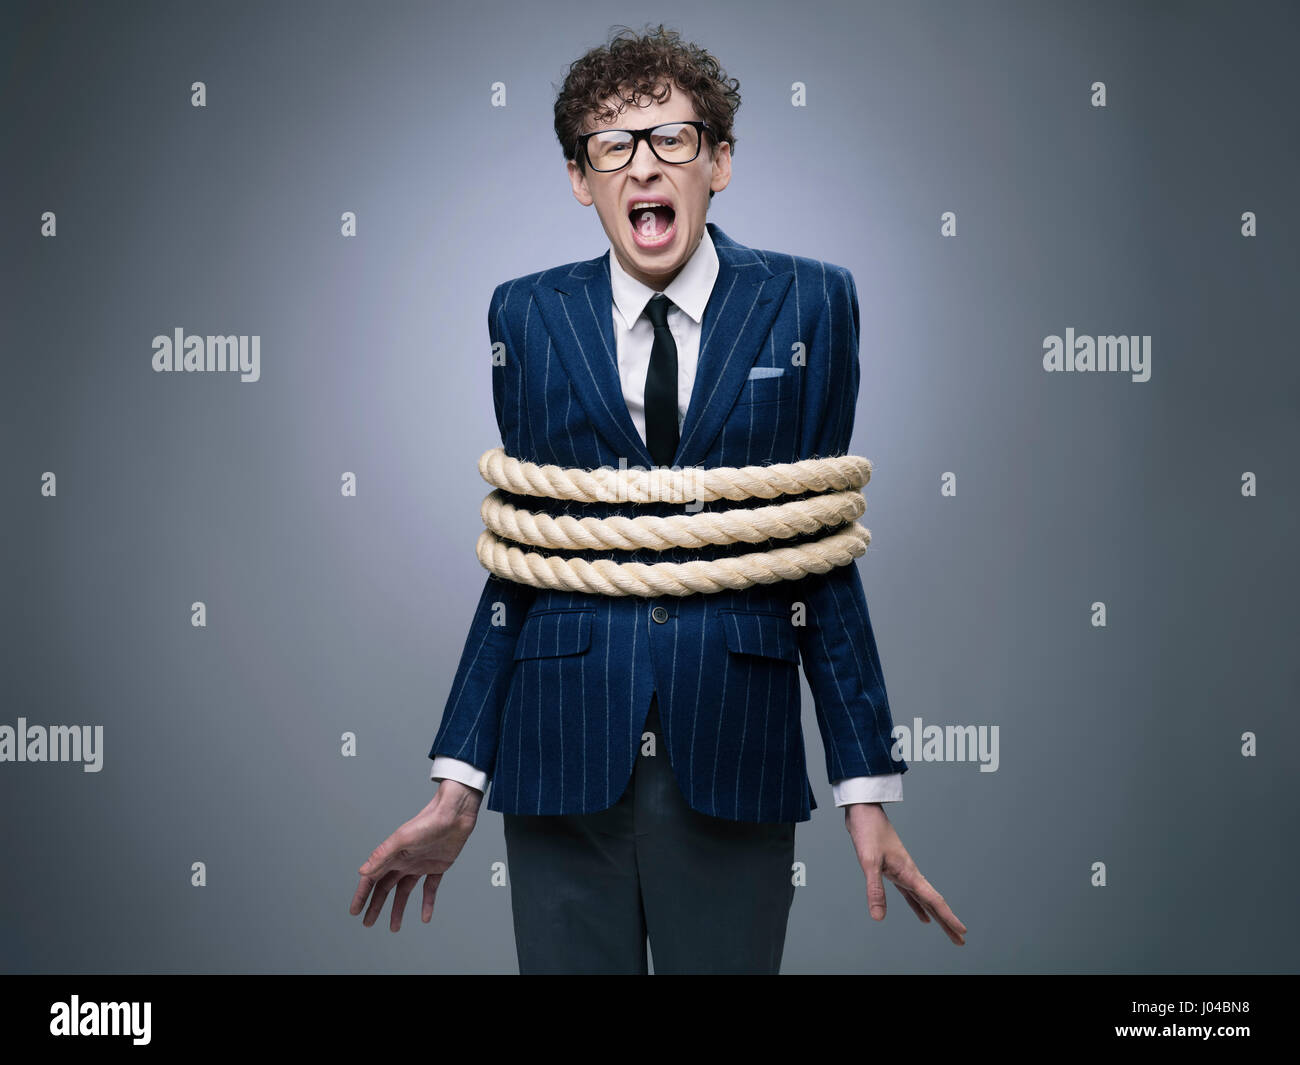 Funny business man tied up with rope screaming for help - Stock Image